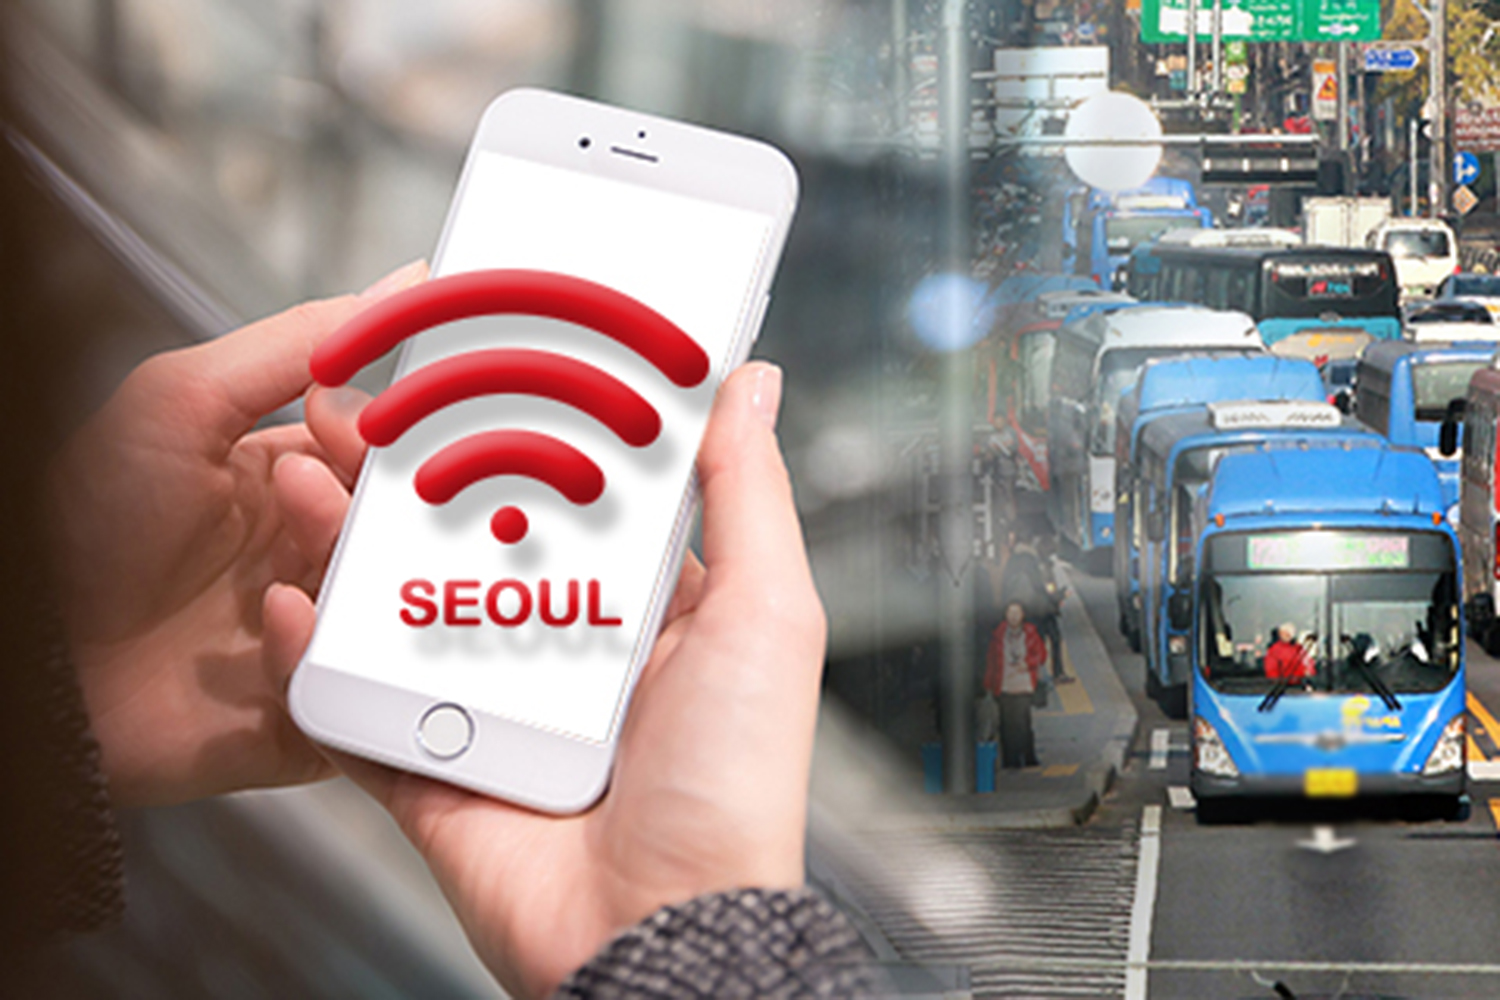 Wi-Fi connection will become free in all public transport services and parks across Seoul from next year. (Pulse photo)